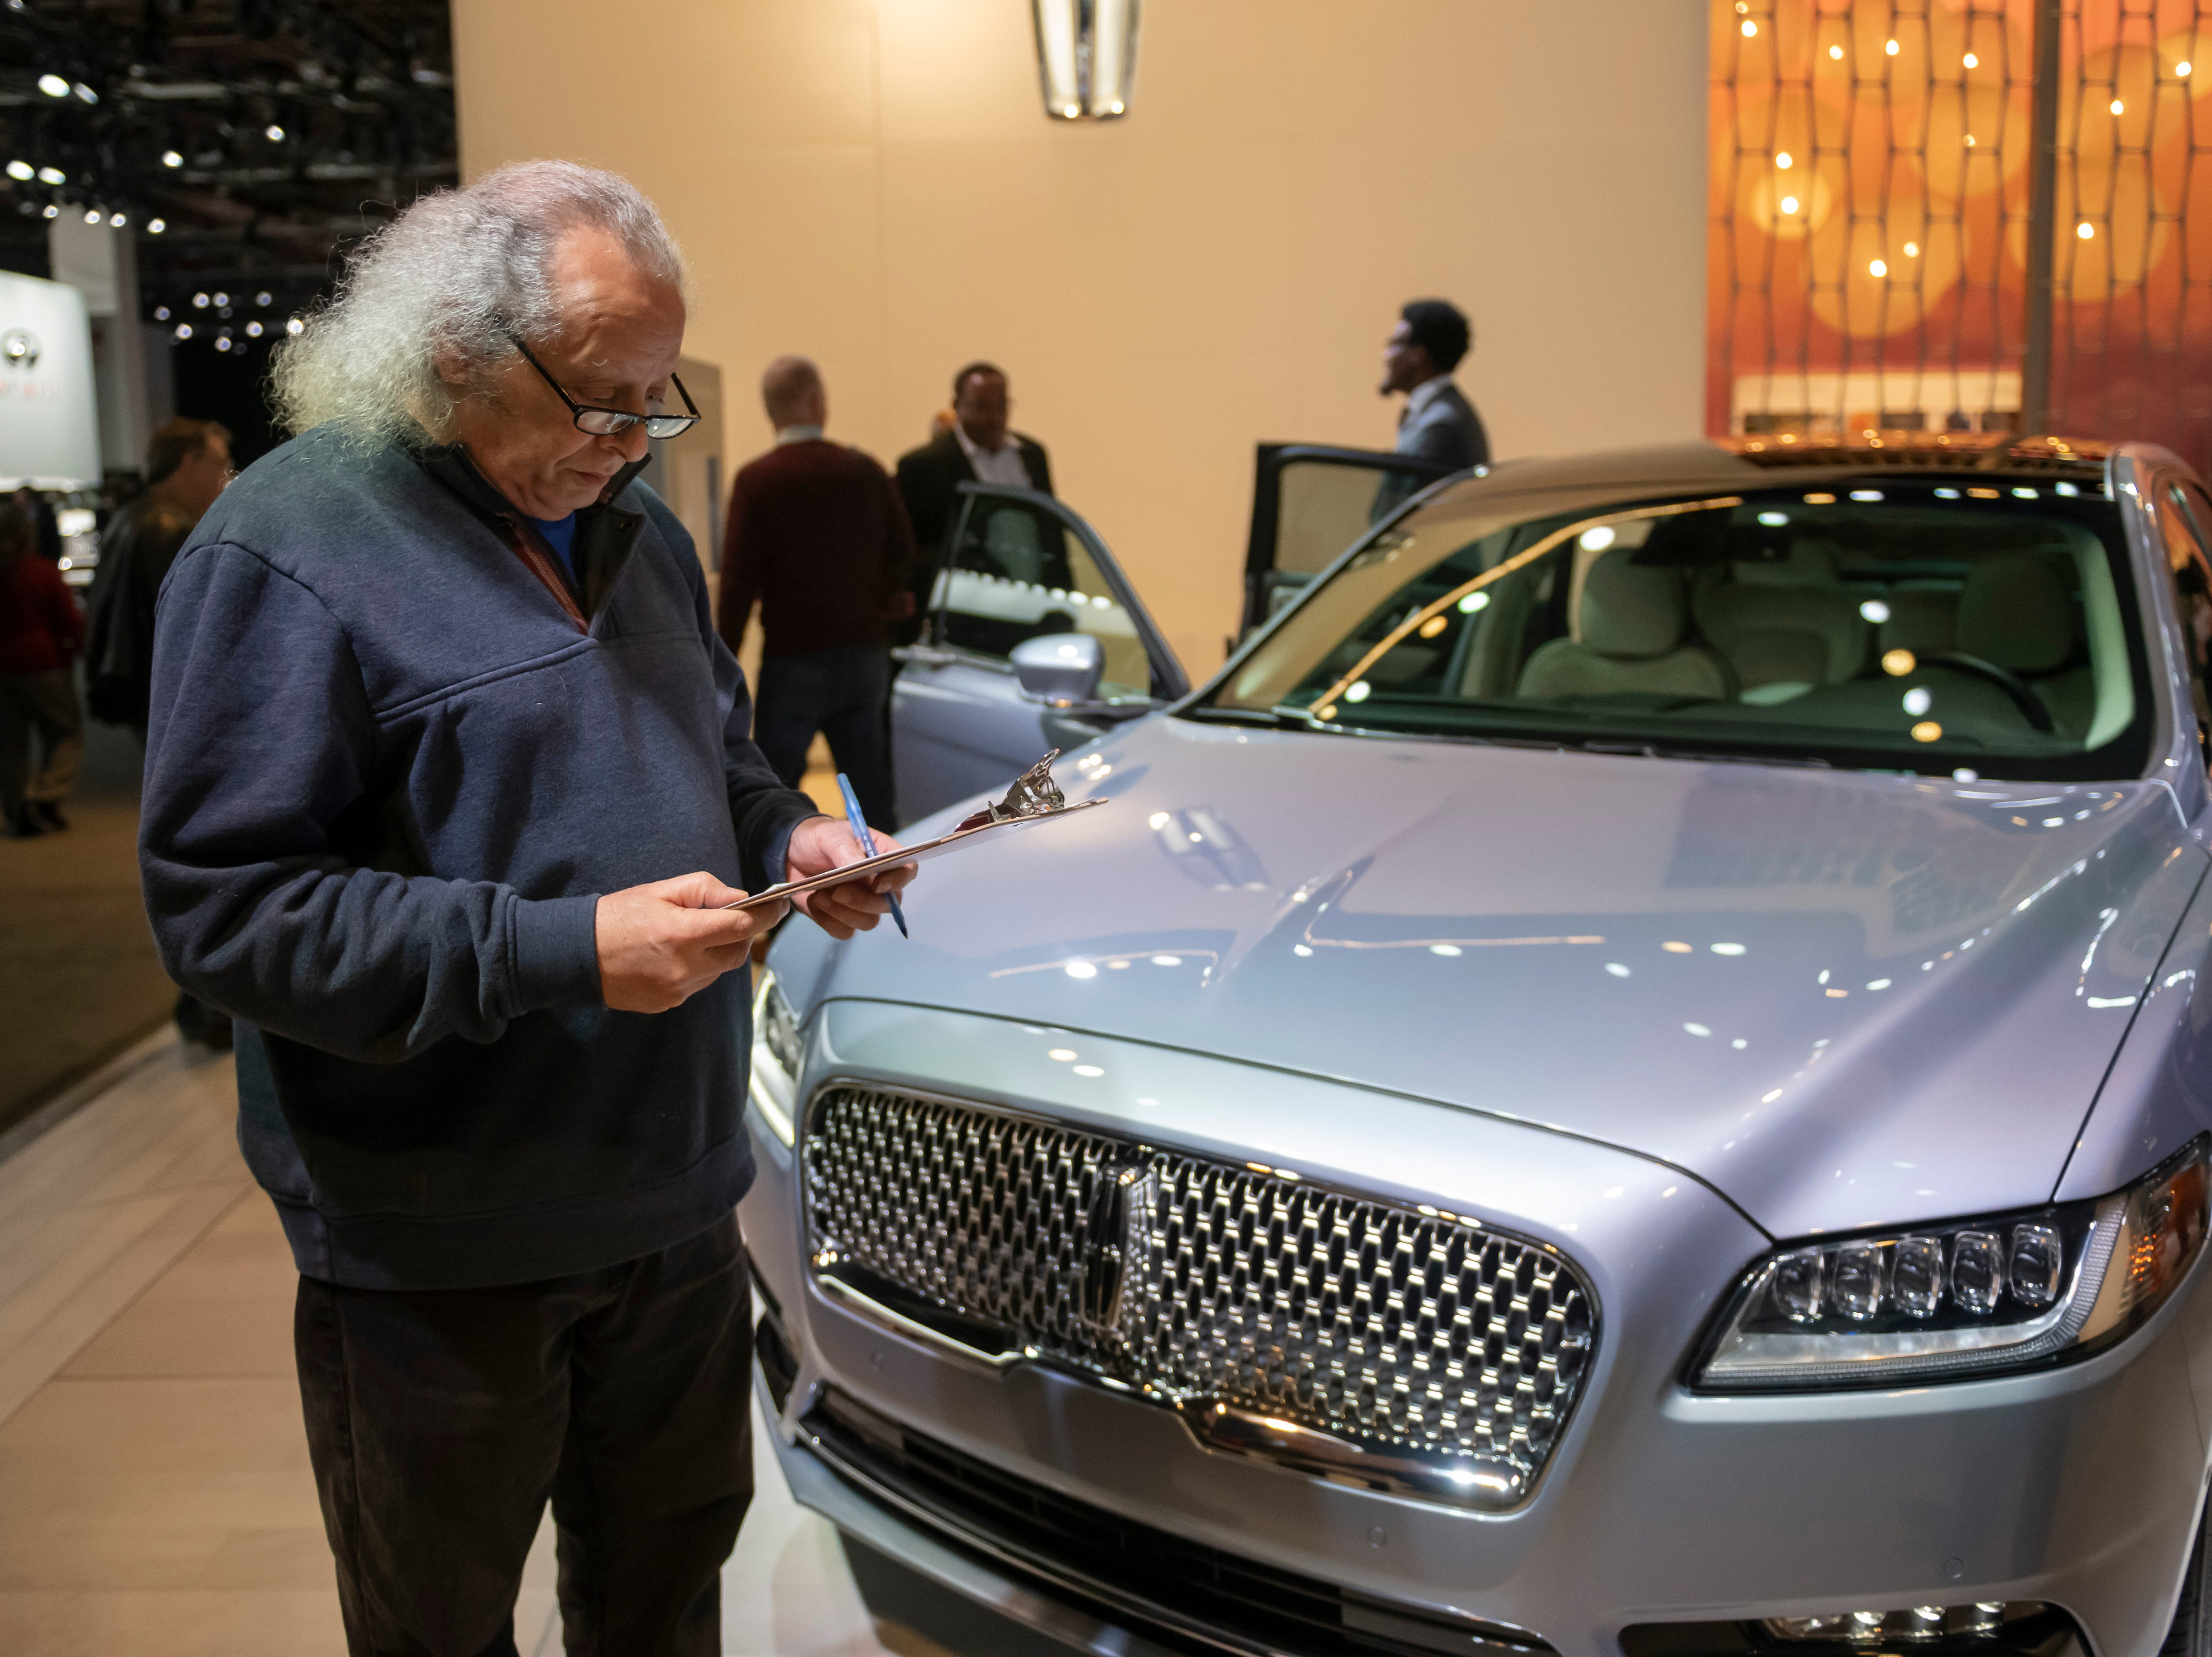 Detroit News Readers Choice awards judge Lou Hatty of Detroit goes over his notes while checking out the Lincoln Continental 80th anniversary edition.